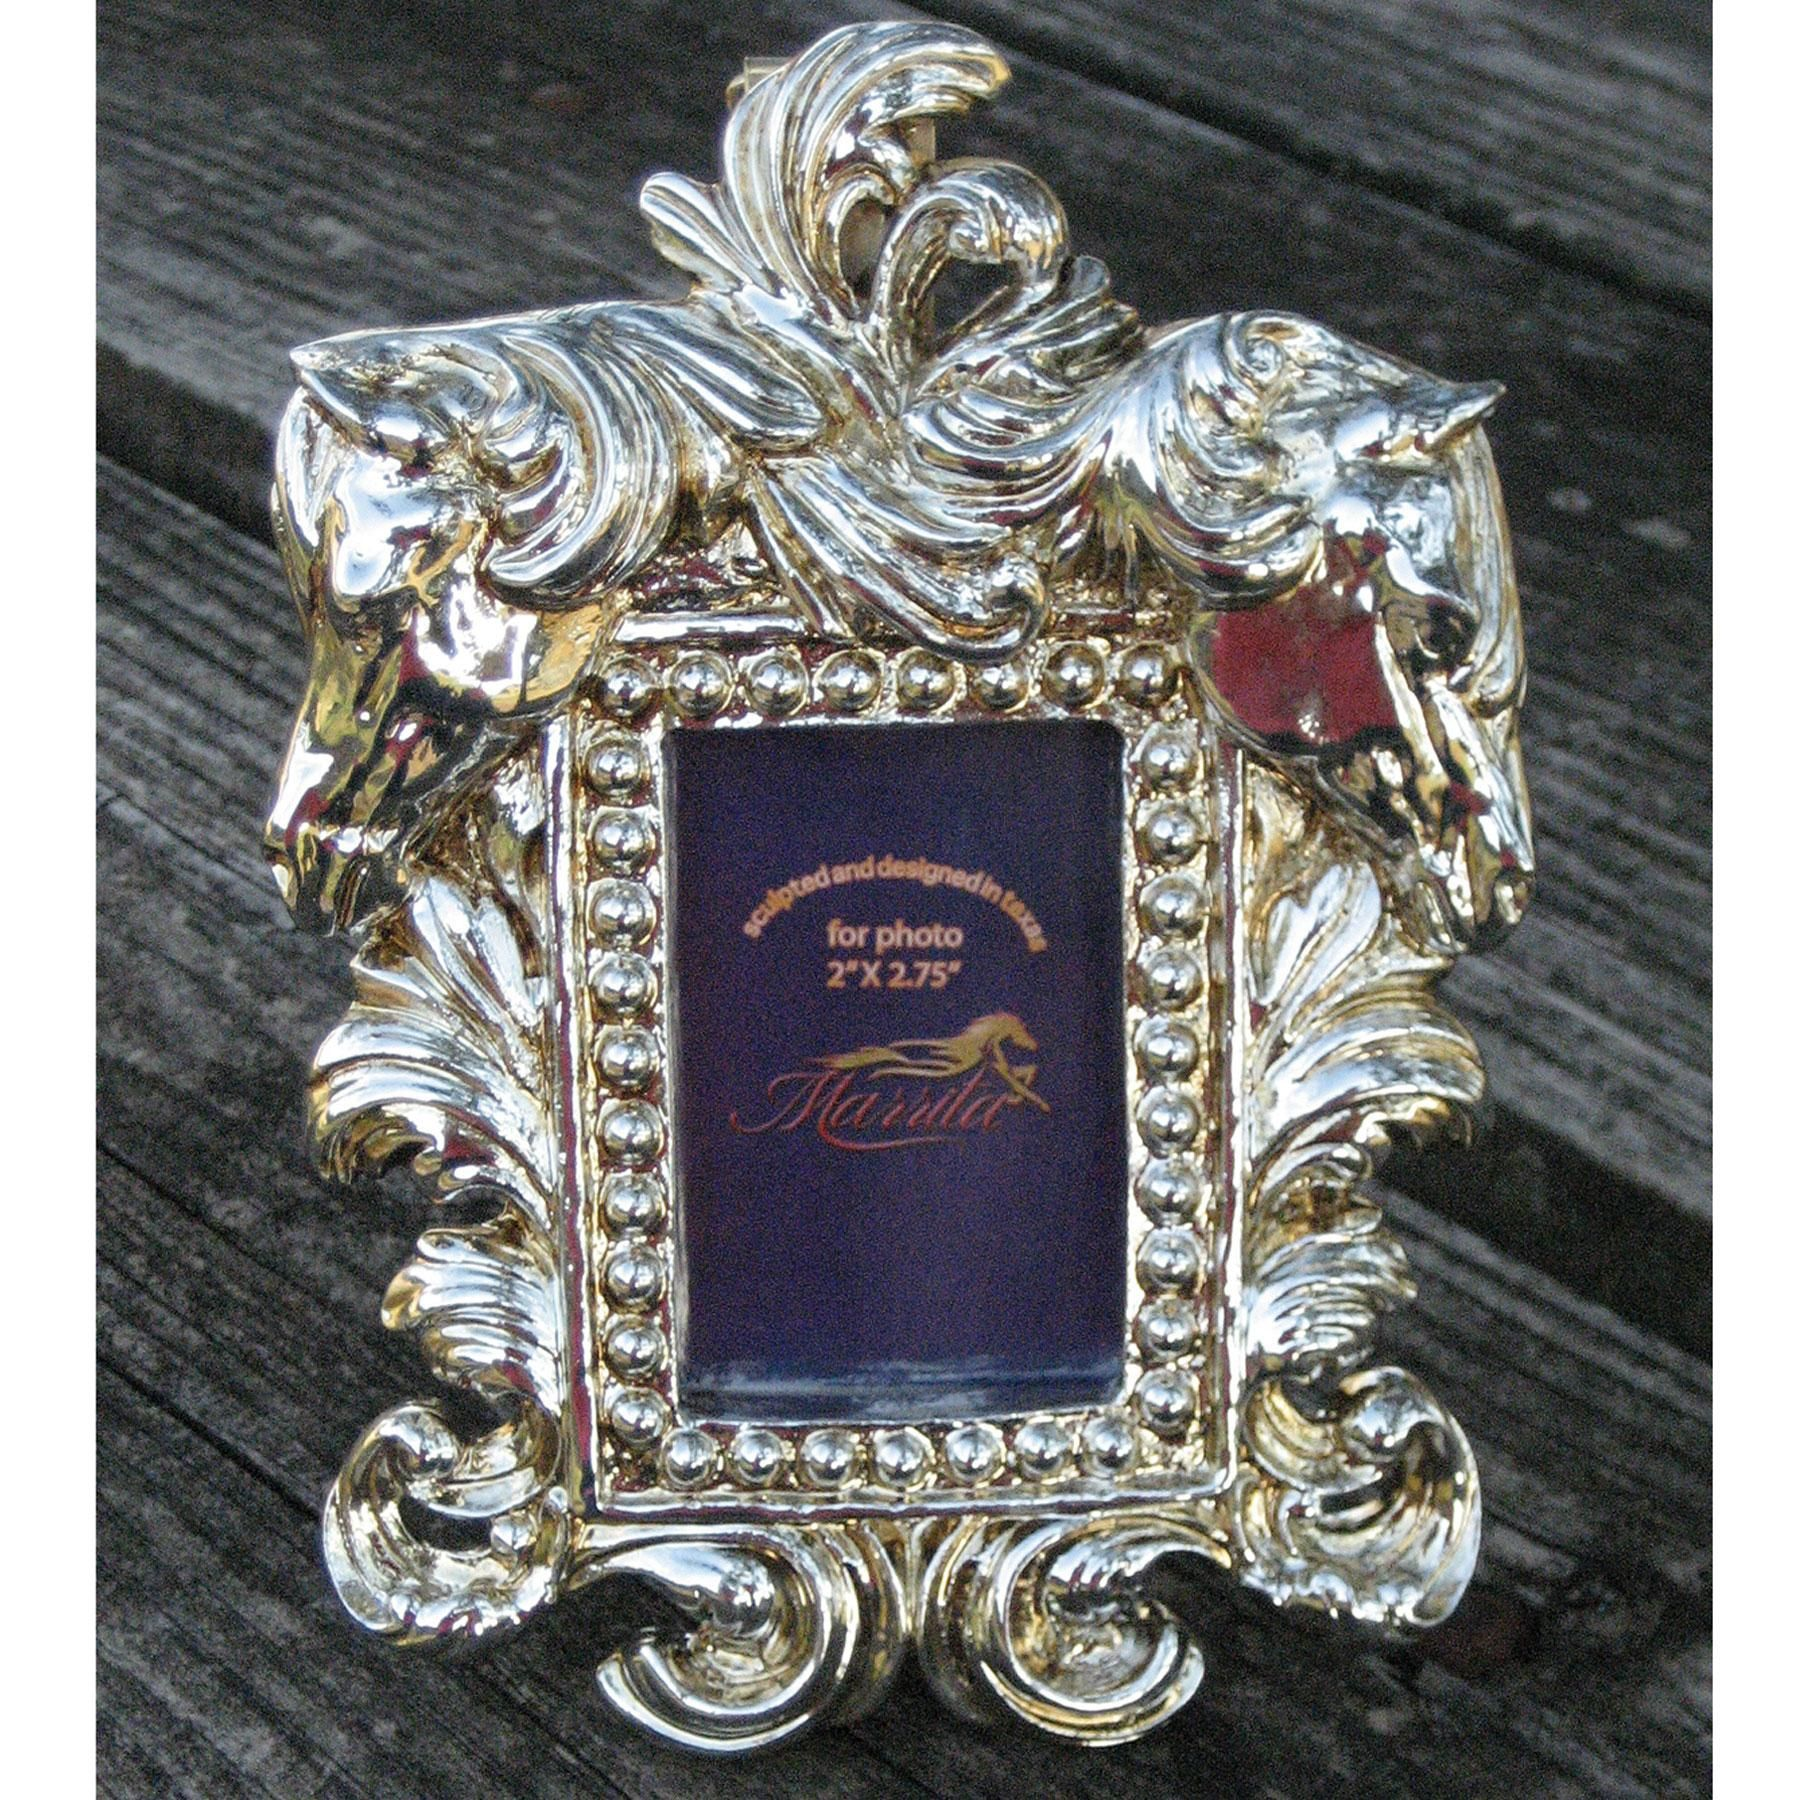 """Remember your beautiful picture in this beautiful Marrita Zita Frame. These beautiful horses with Rococo stylized metallic manes are ever present to protect your photos or award. Fits any 2"""" x 5"""" photo. Makes the perfect gift for any horse lover."""